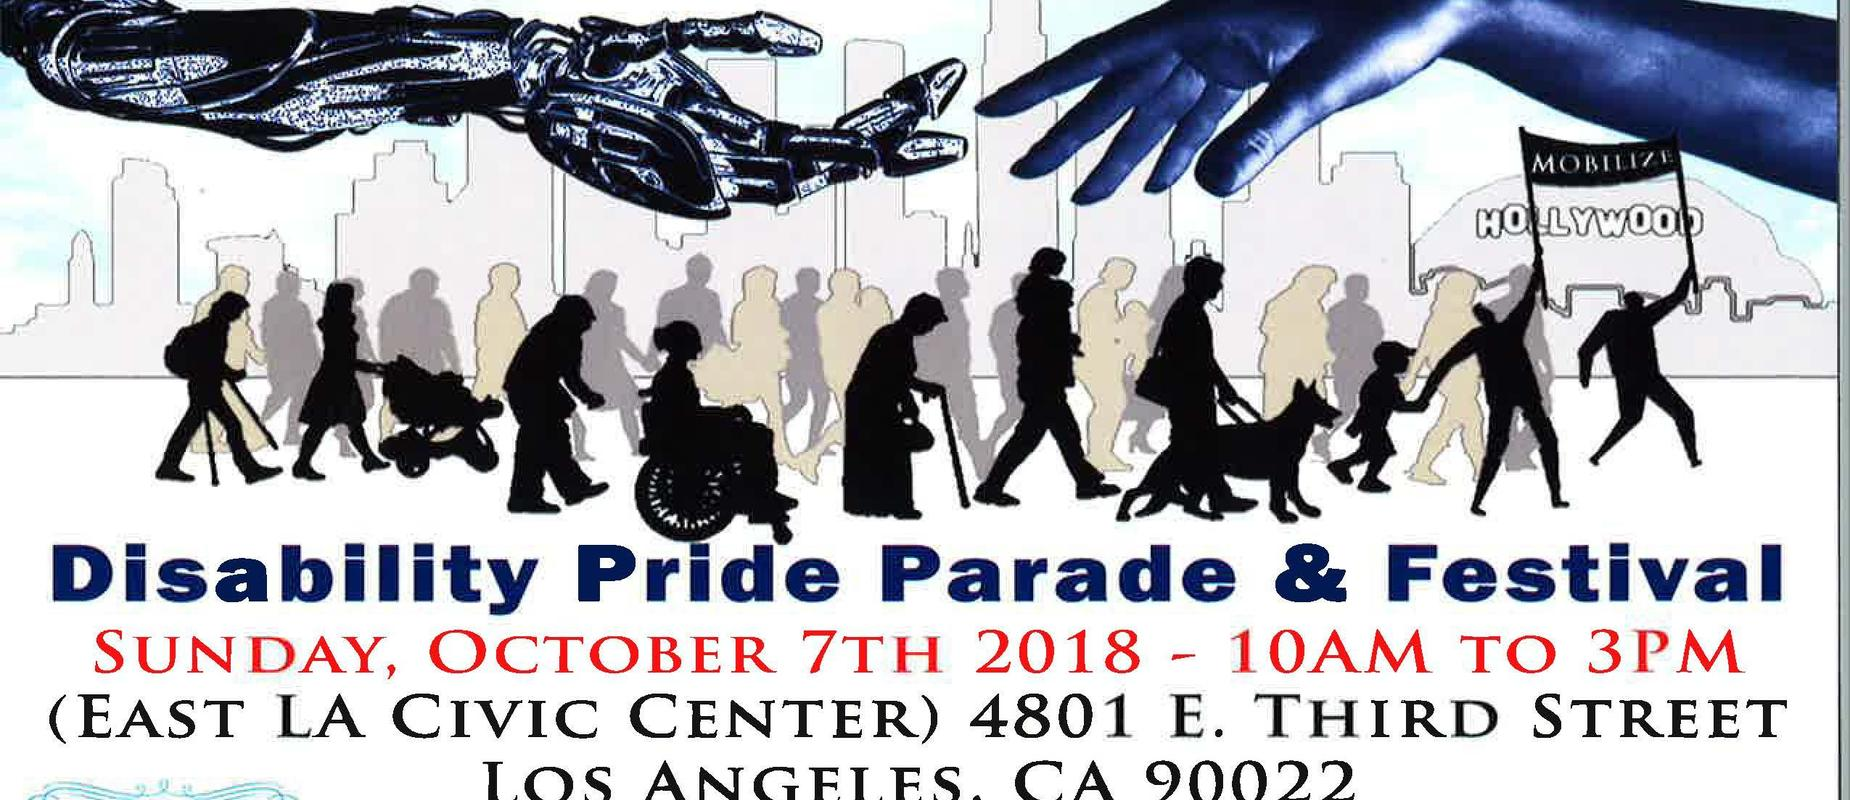 Save the date postcard for Disability Pride Parade and Festival on October 7, 2018 at the East LA Civic Center. Postcard displays silhouette of people marching in a parade( English Version).